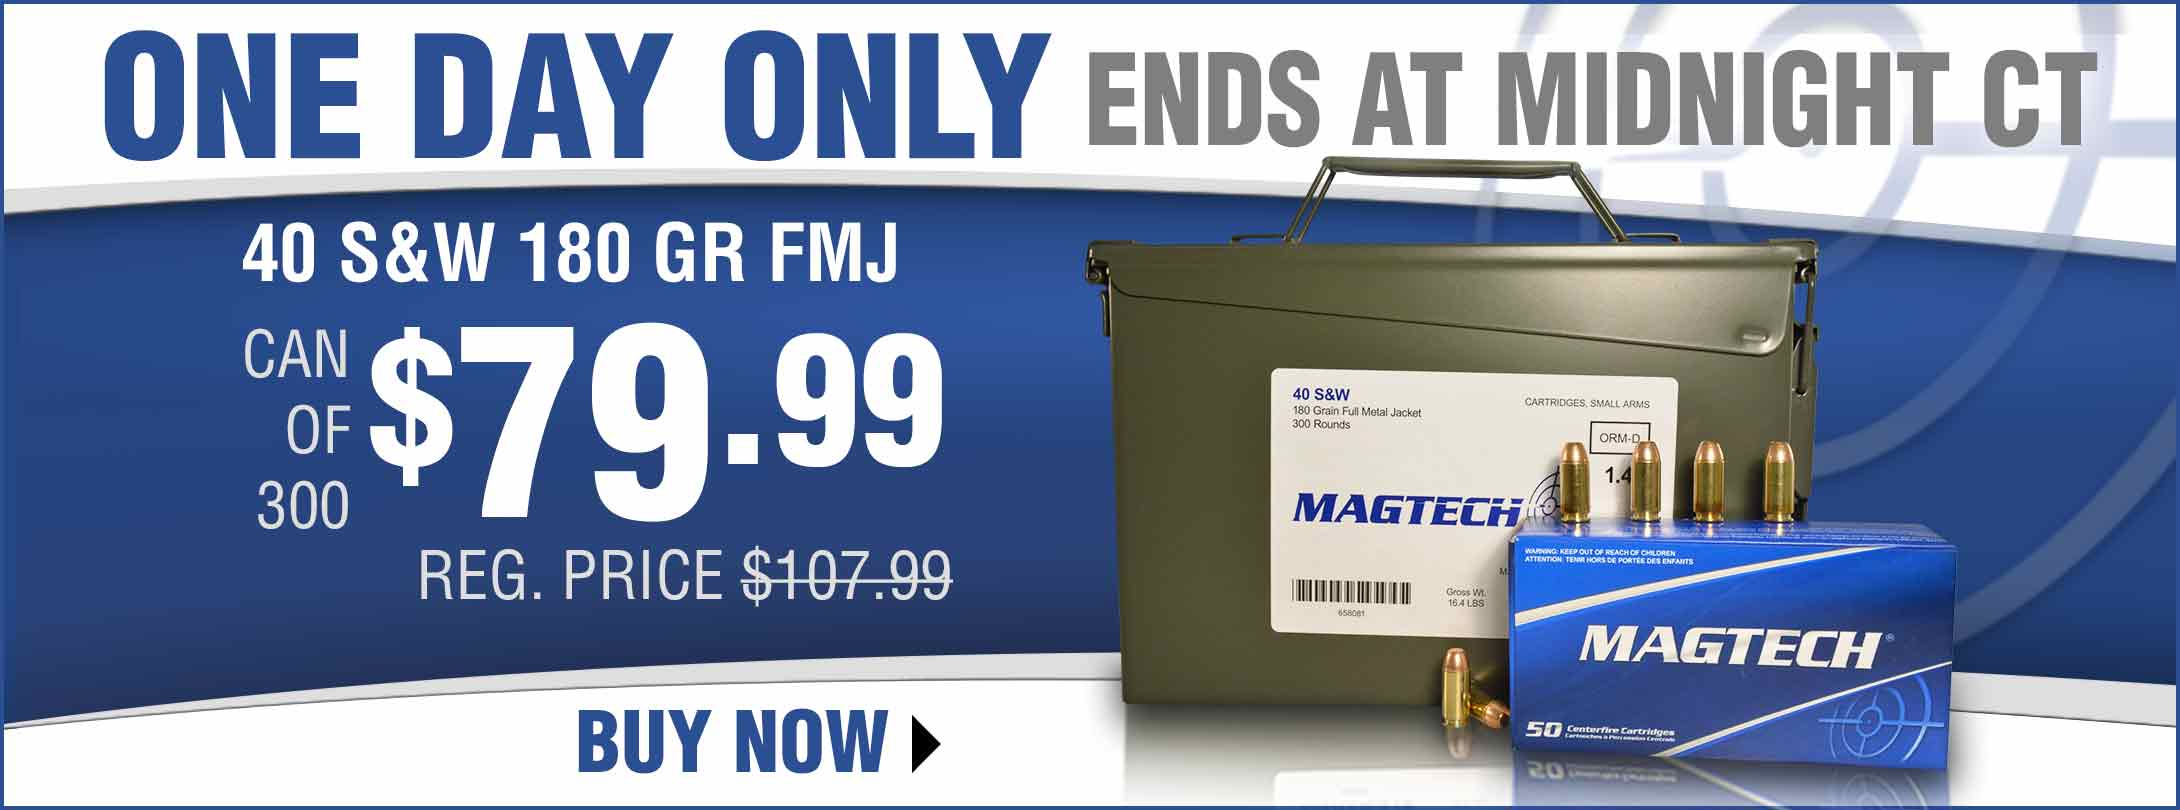 Save on Magtech 40 S&W!